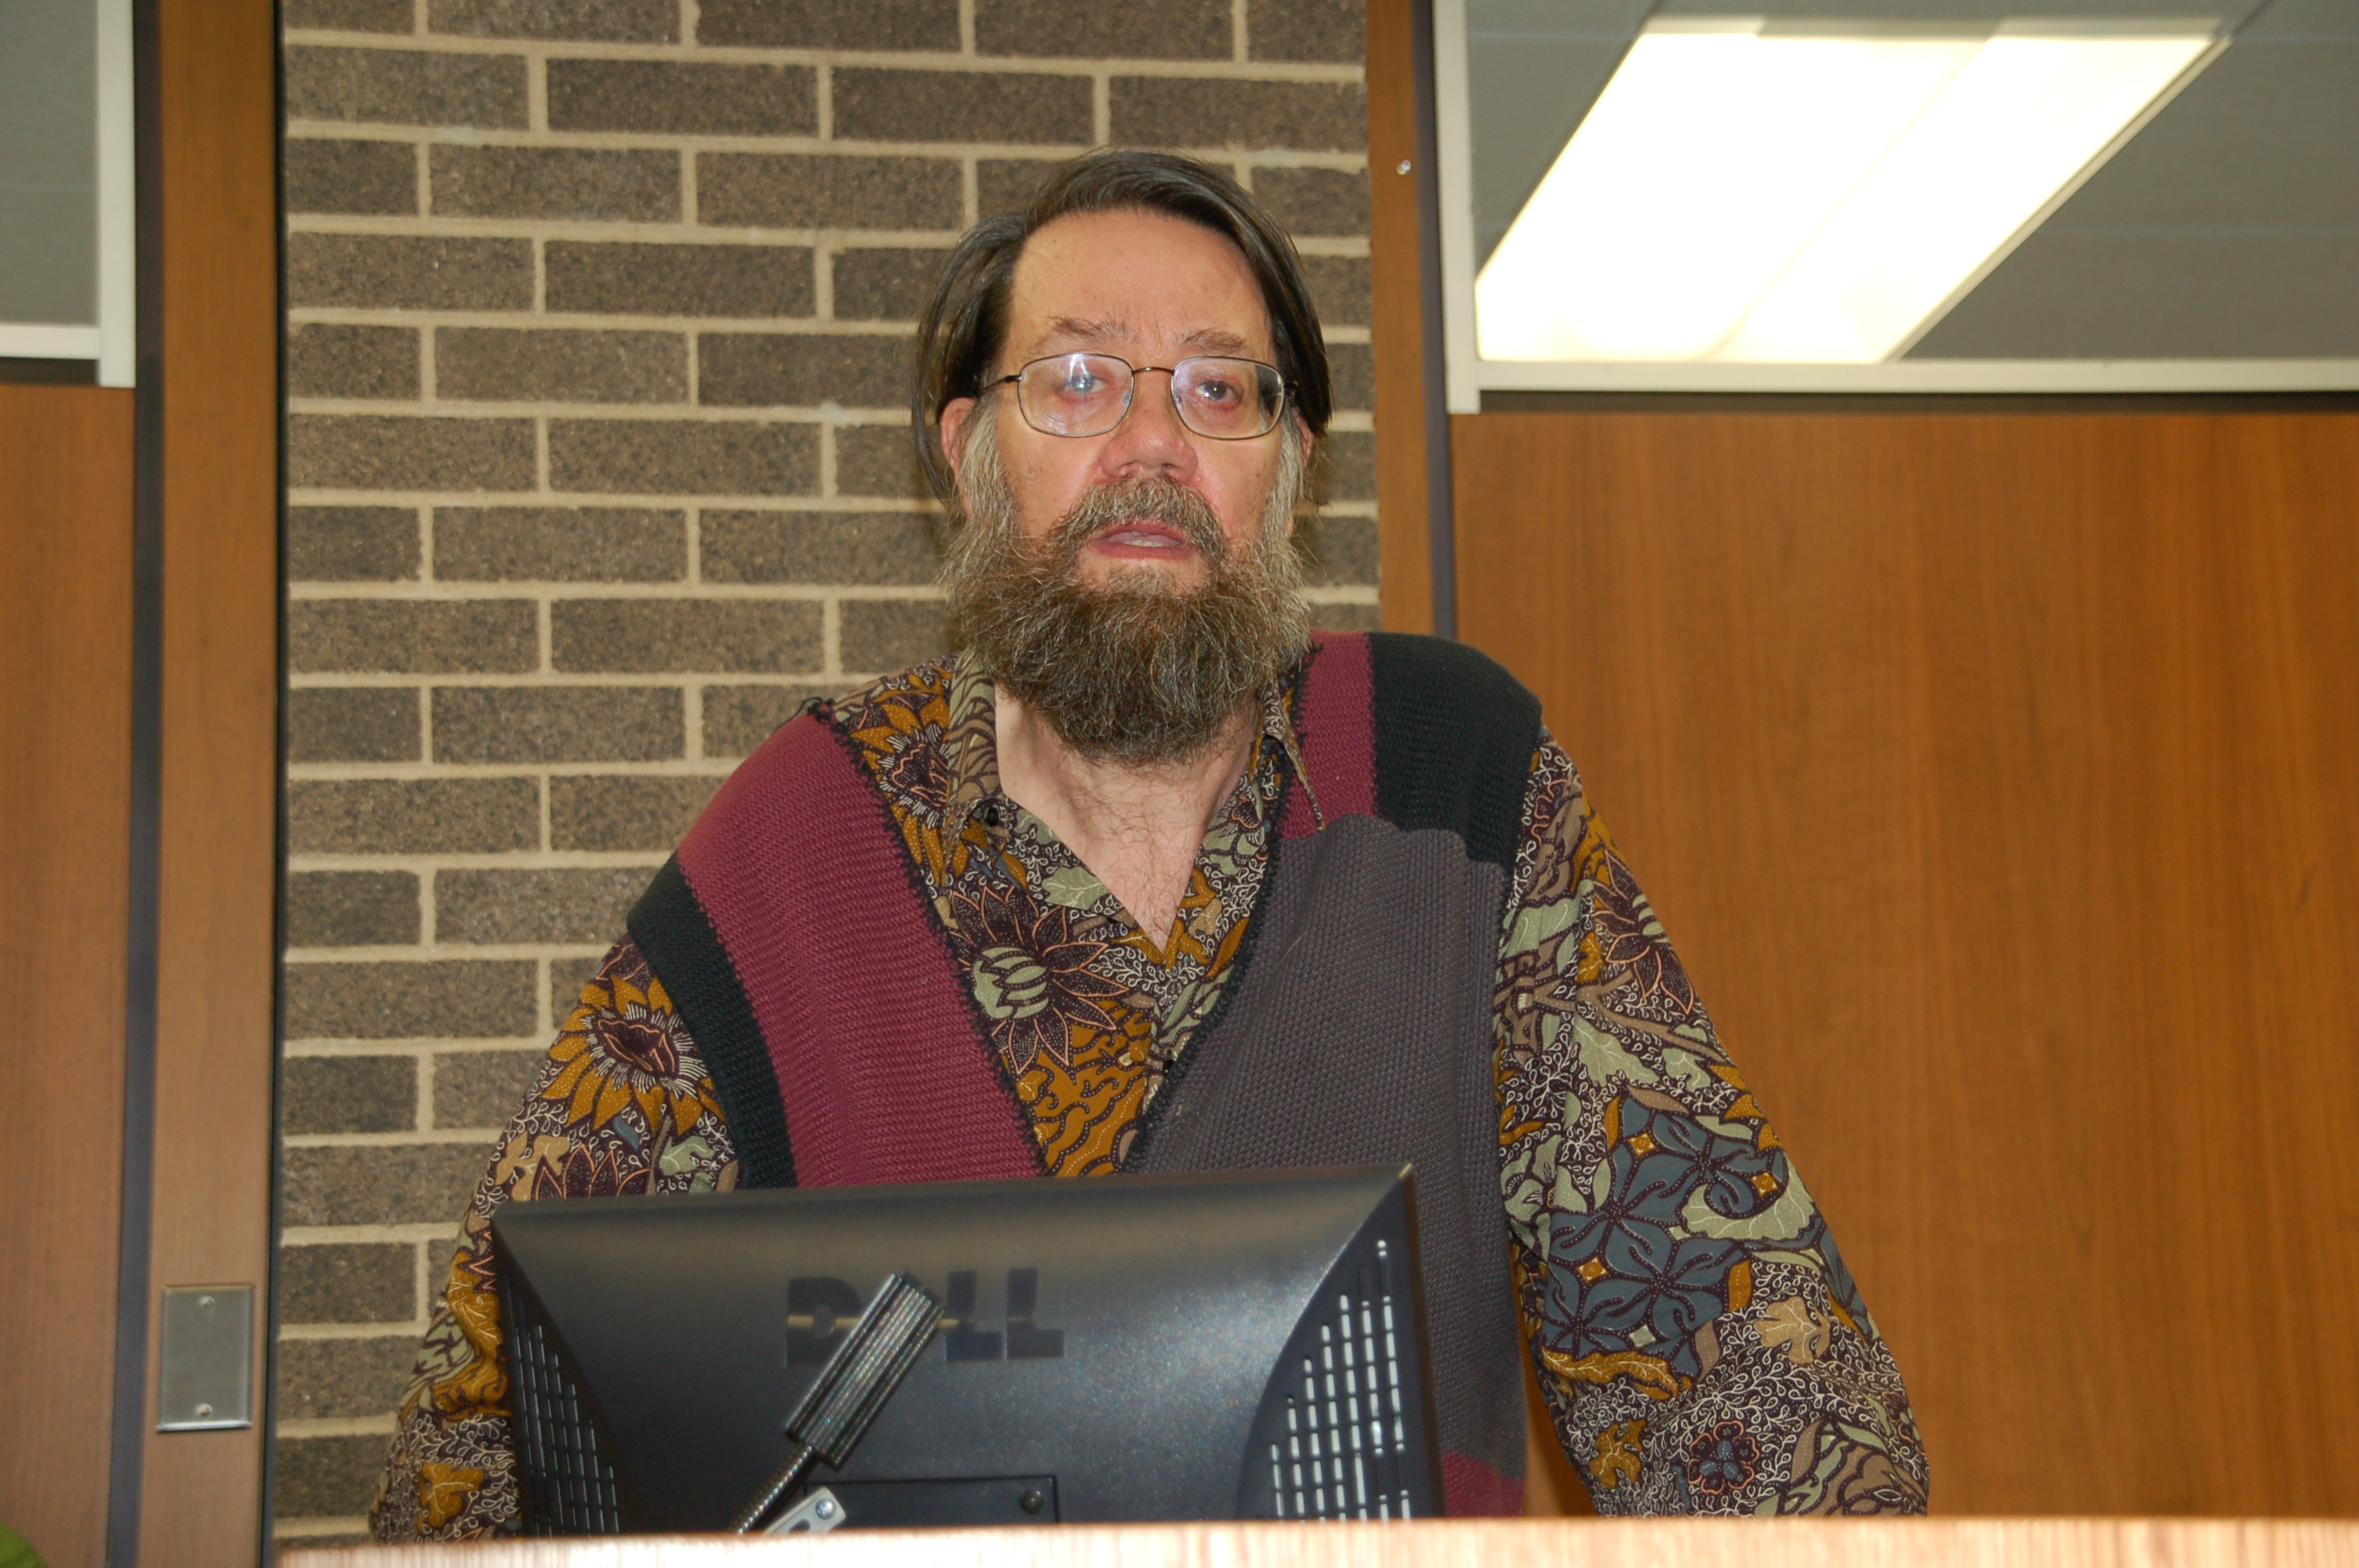 Franklin Rosemont speaking at Loyola University, Chicago, 2007.